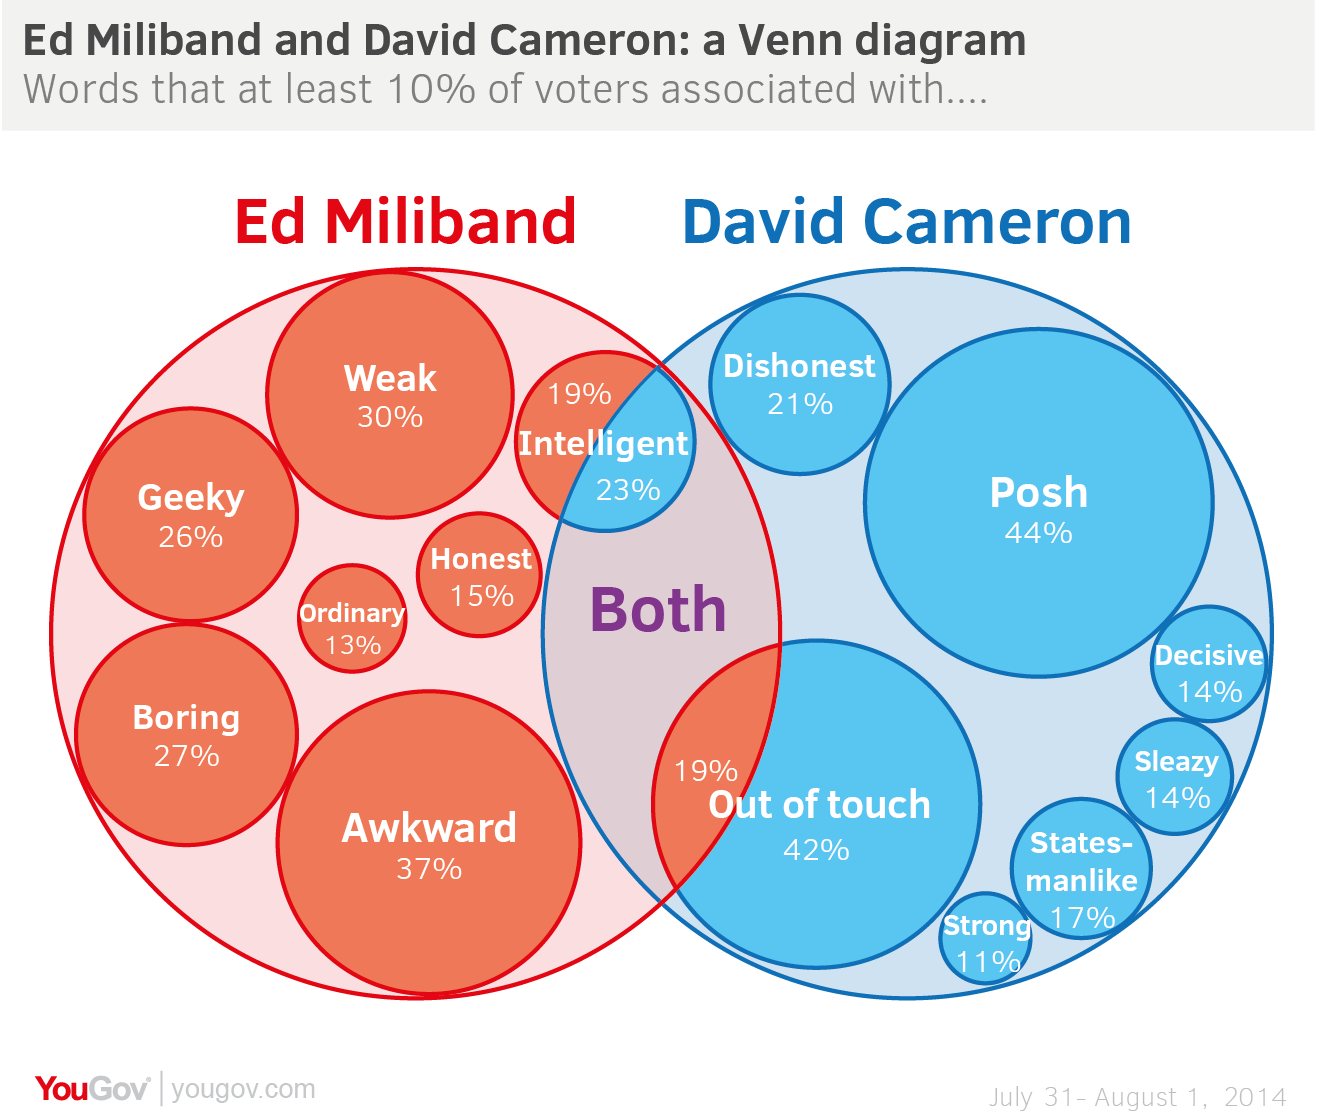 Yougov reputation venn diagram awkward meets posh the diagram also sheds light on something the debate sometimes misses when talking about image while ed milibands image has some big negatives for a party pooptronica